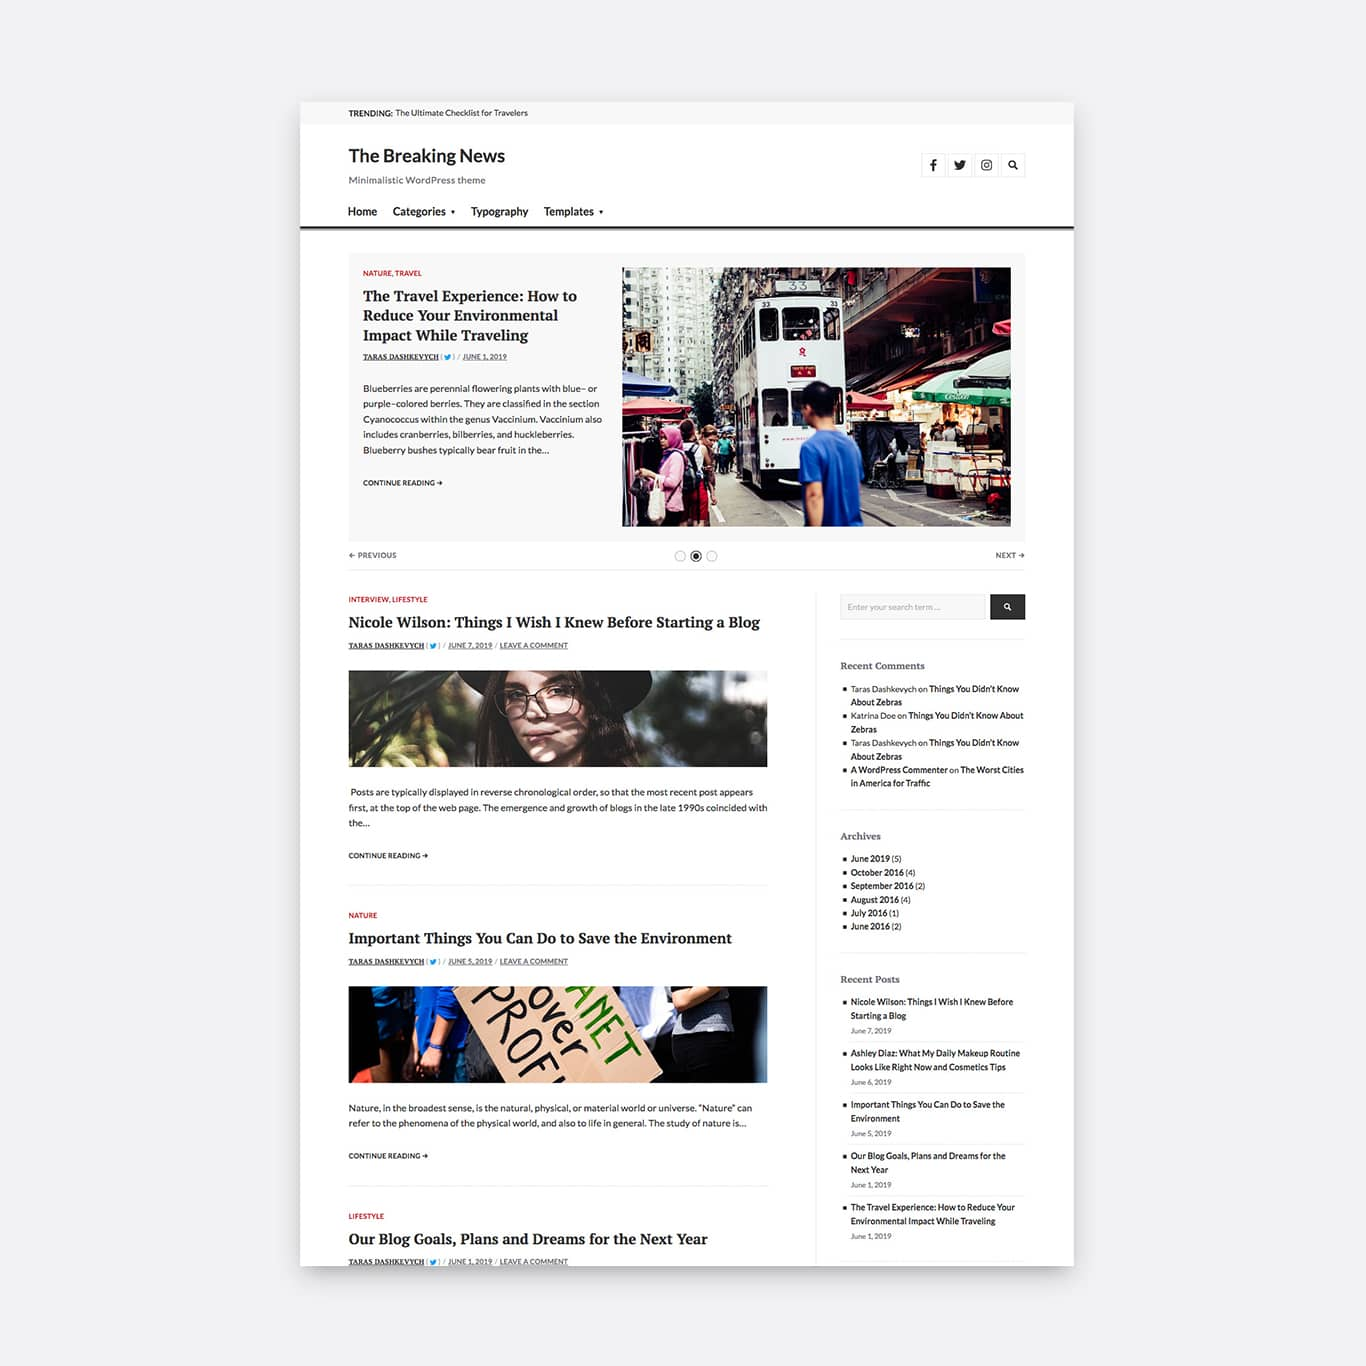 One column layout with an active sidebar and horizontal image orientation.